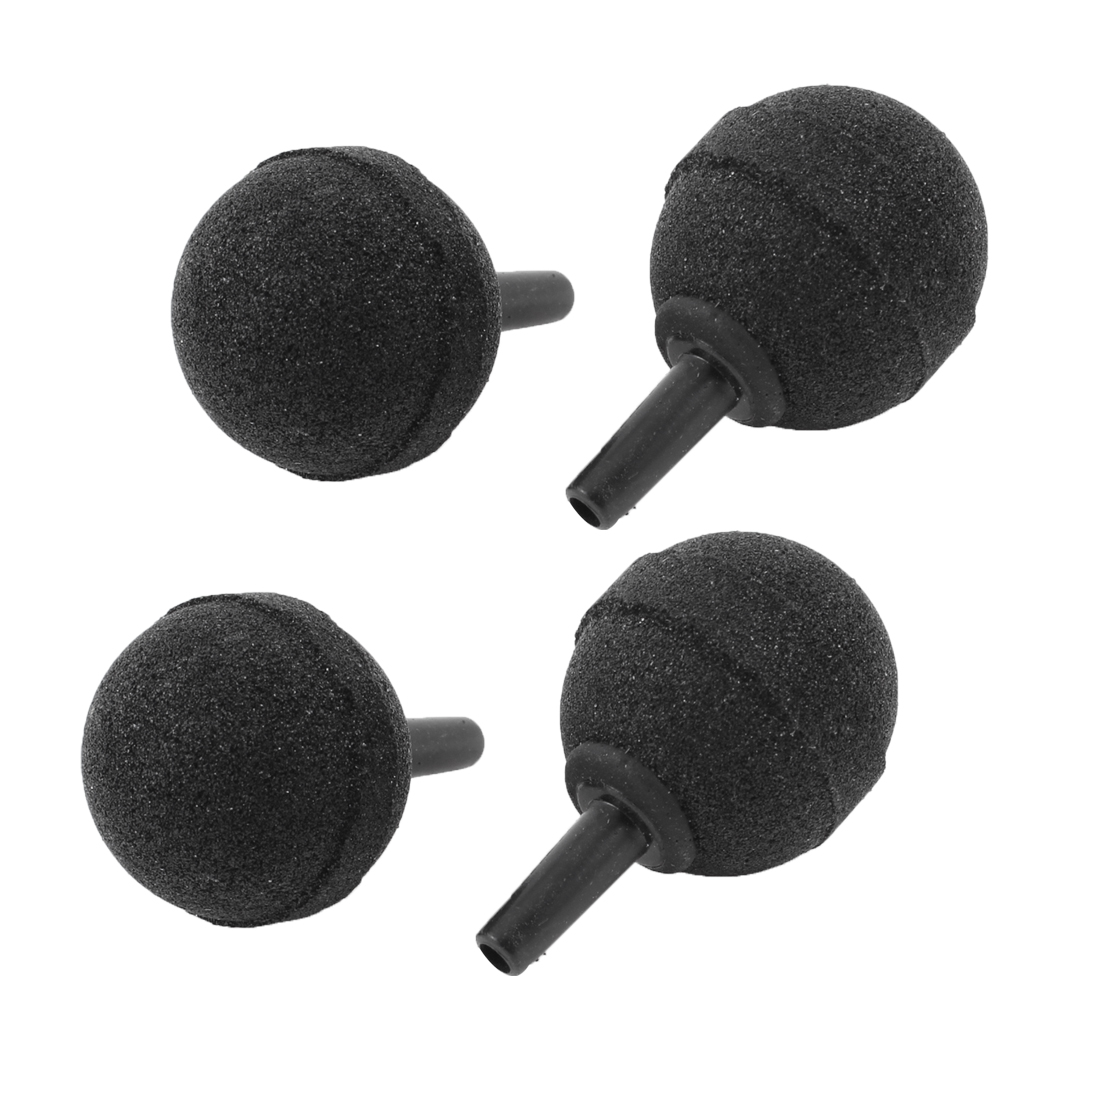 "1"" Diameter Ball Shape Air Stones Aeroponics Diffuser Gray 5 Pcs"